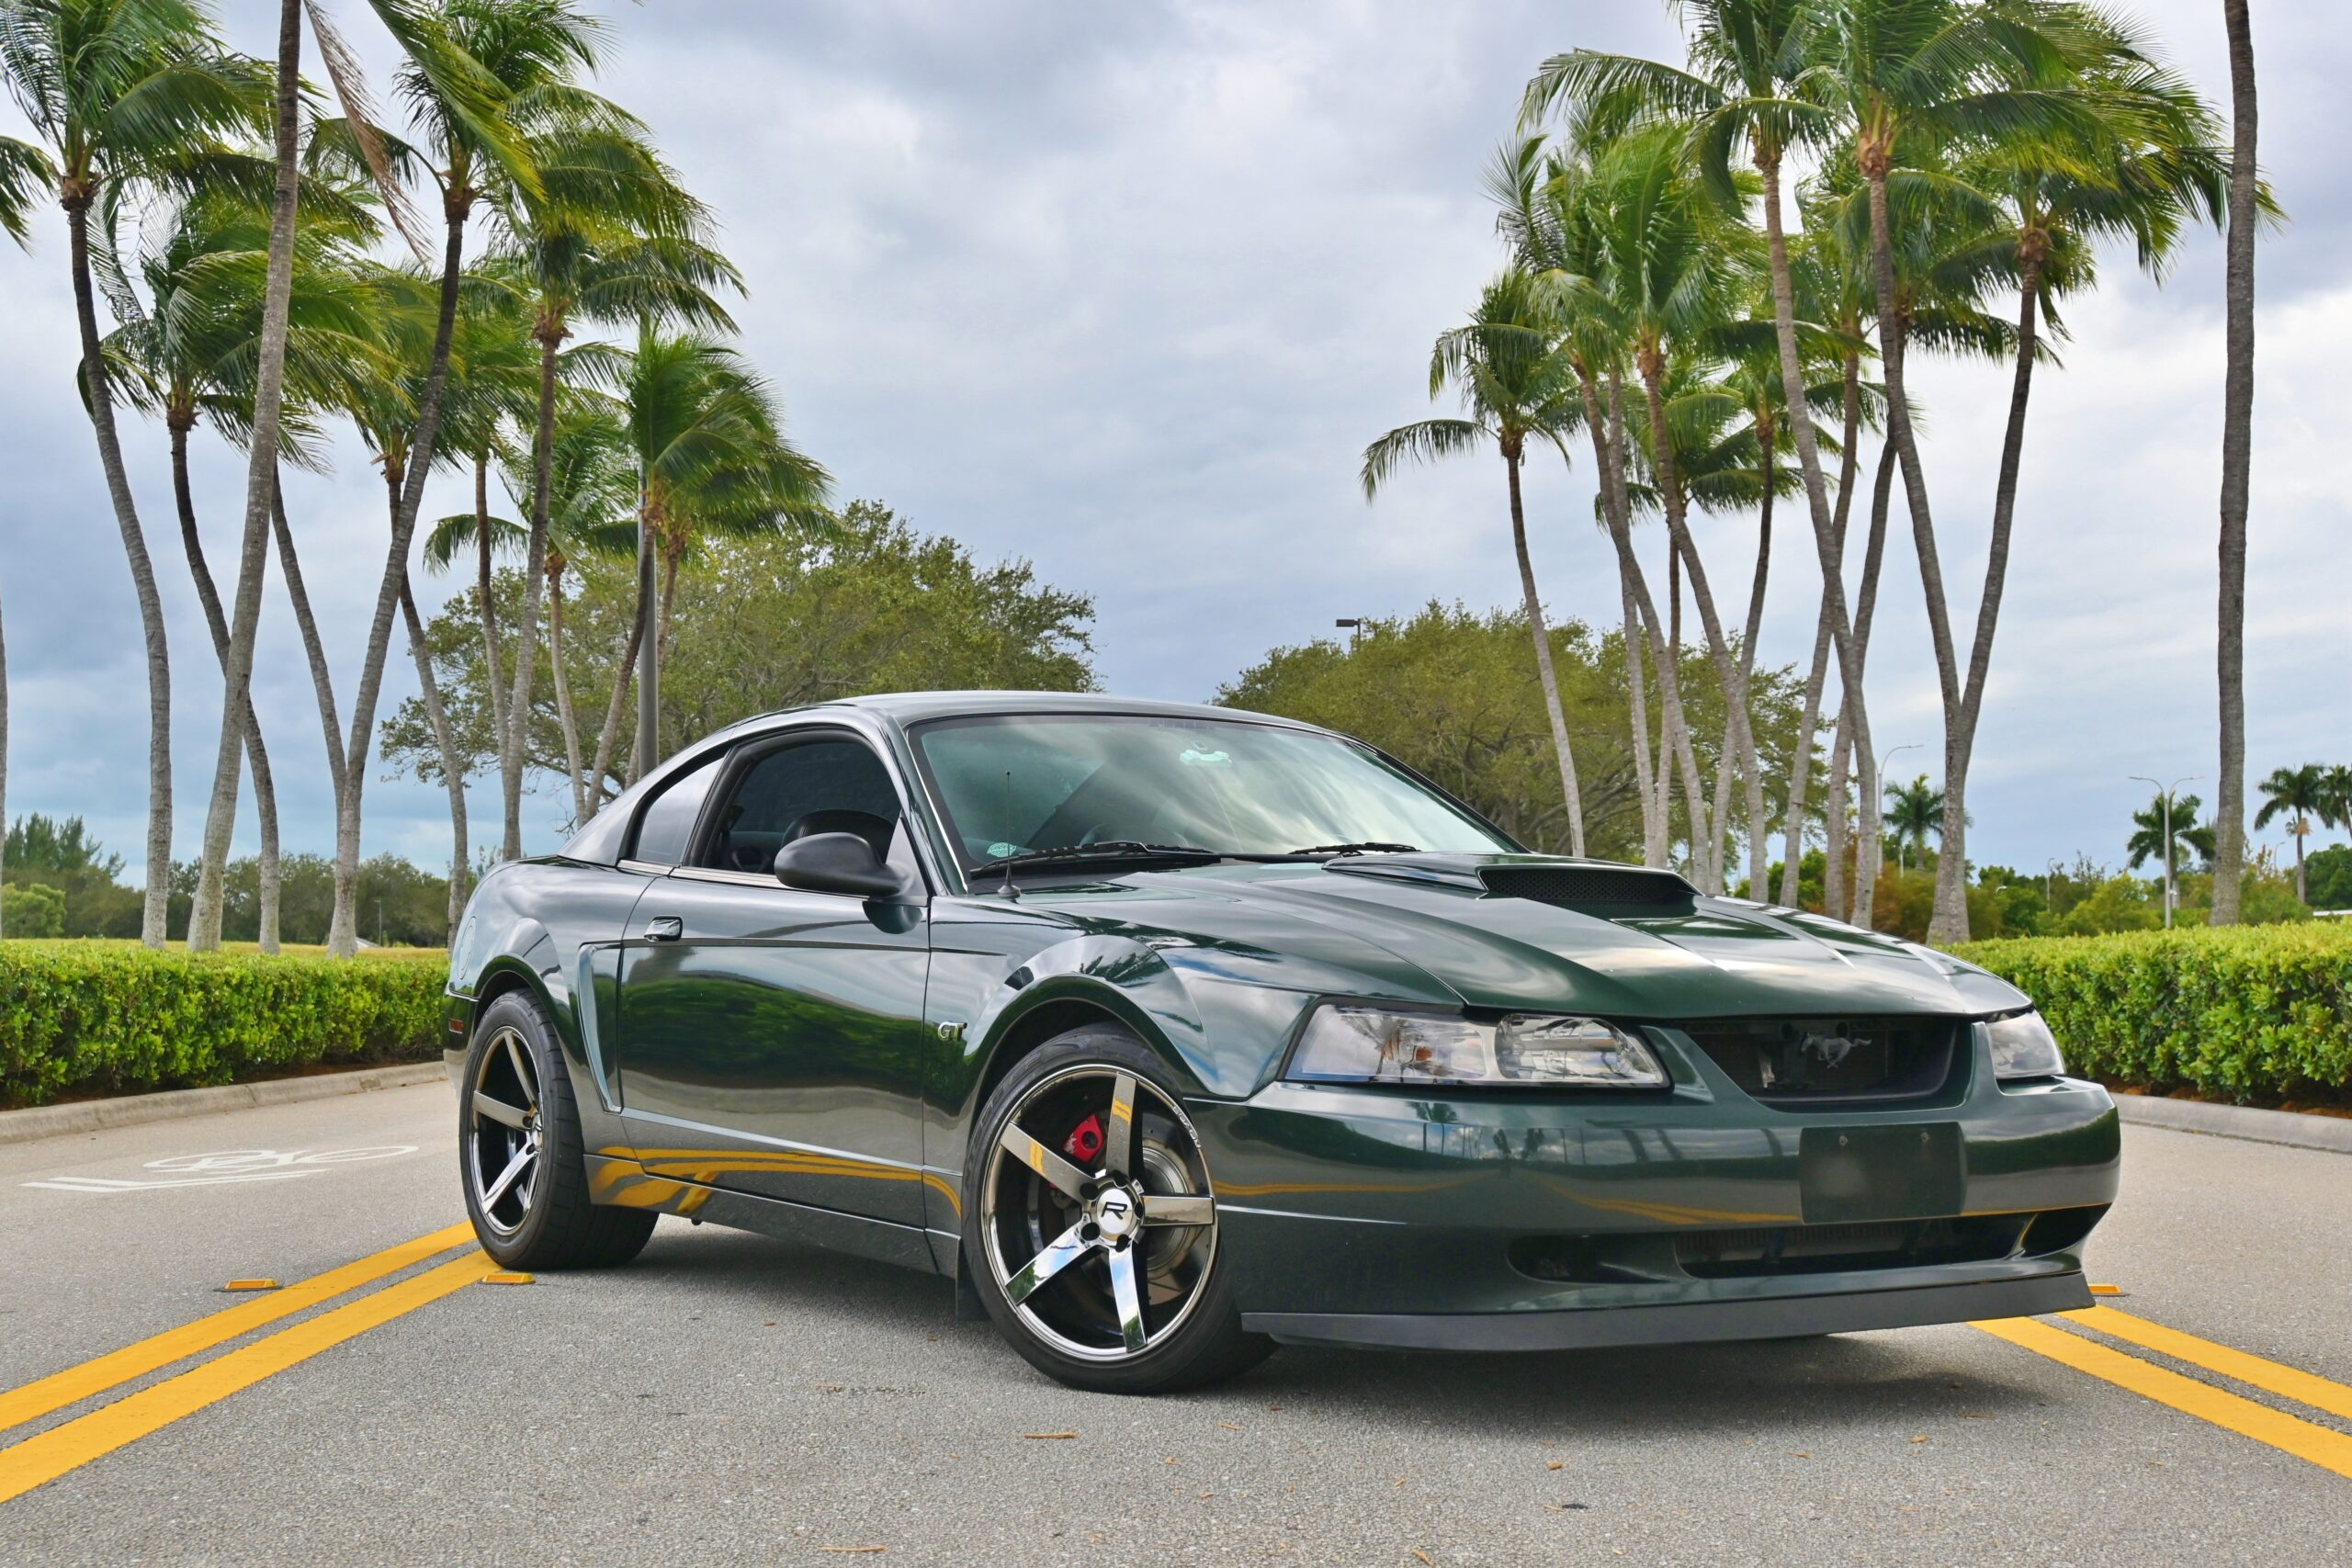 2001 Ford Mustang Bullitt #4382 1 of 5,582 ever made Nicely Modified /Supercharged /Well Sorted /Only 72k Miles